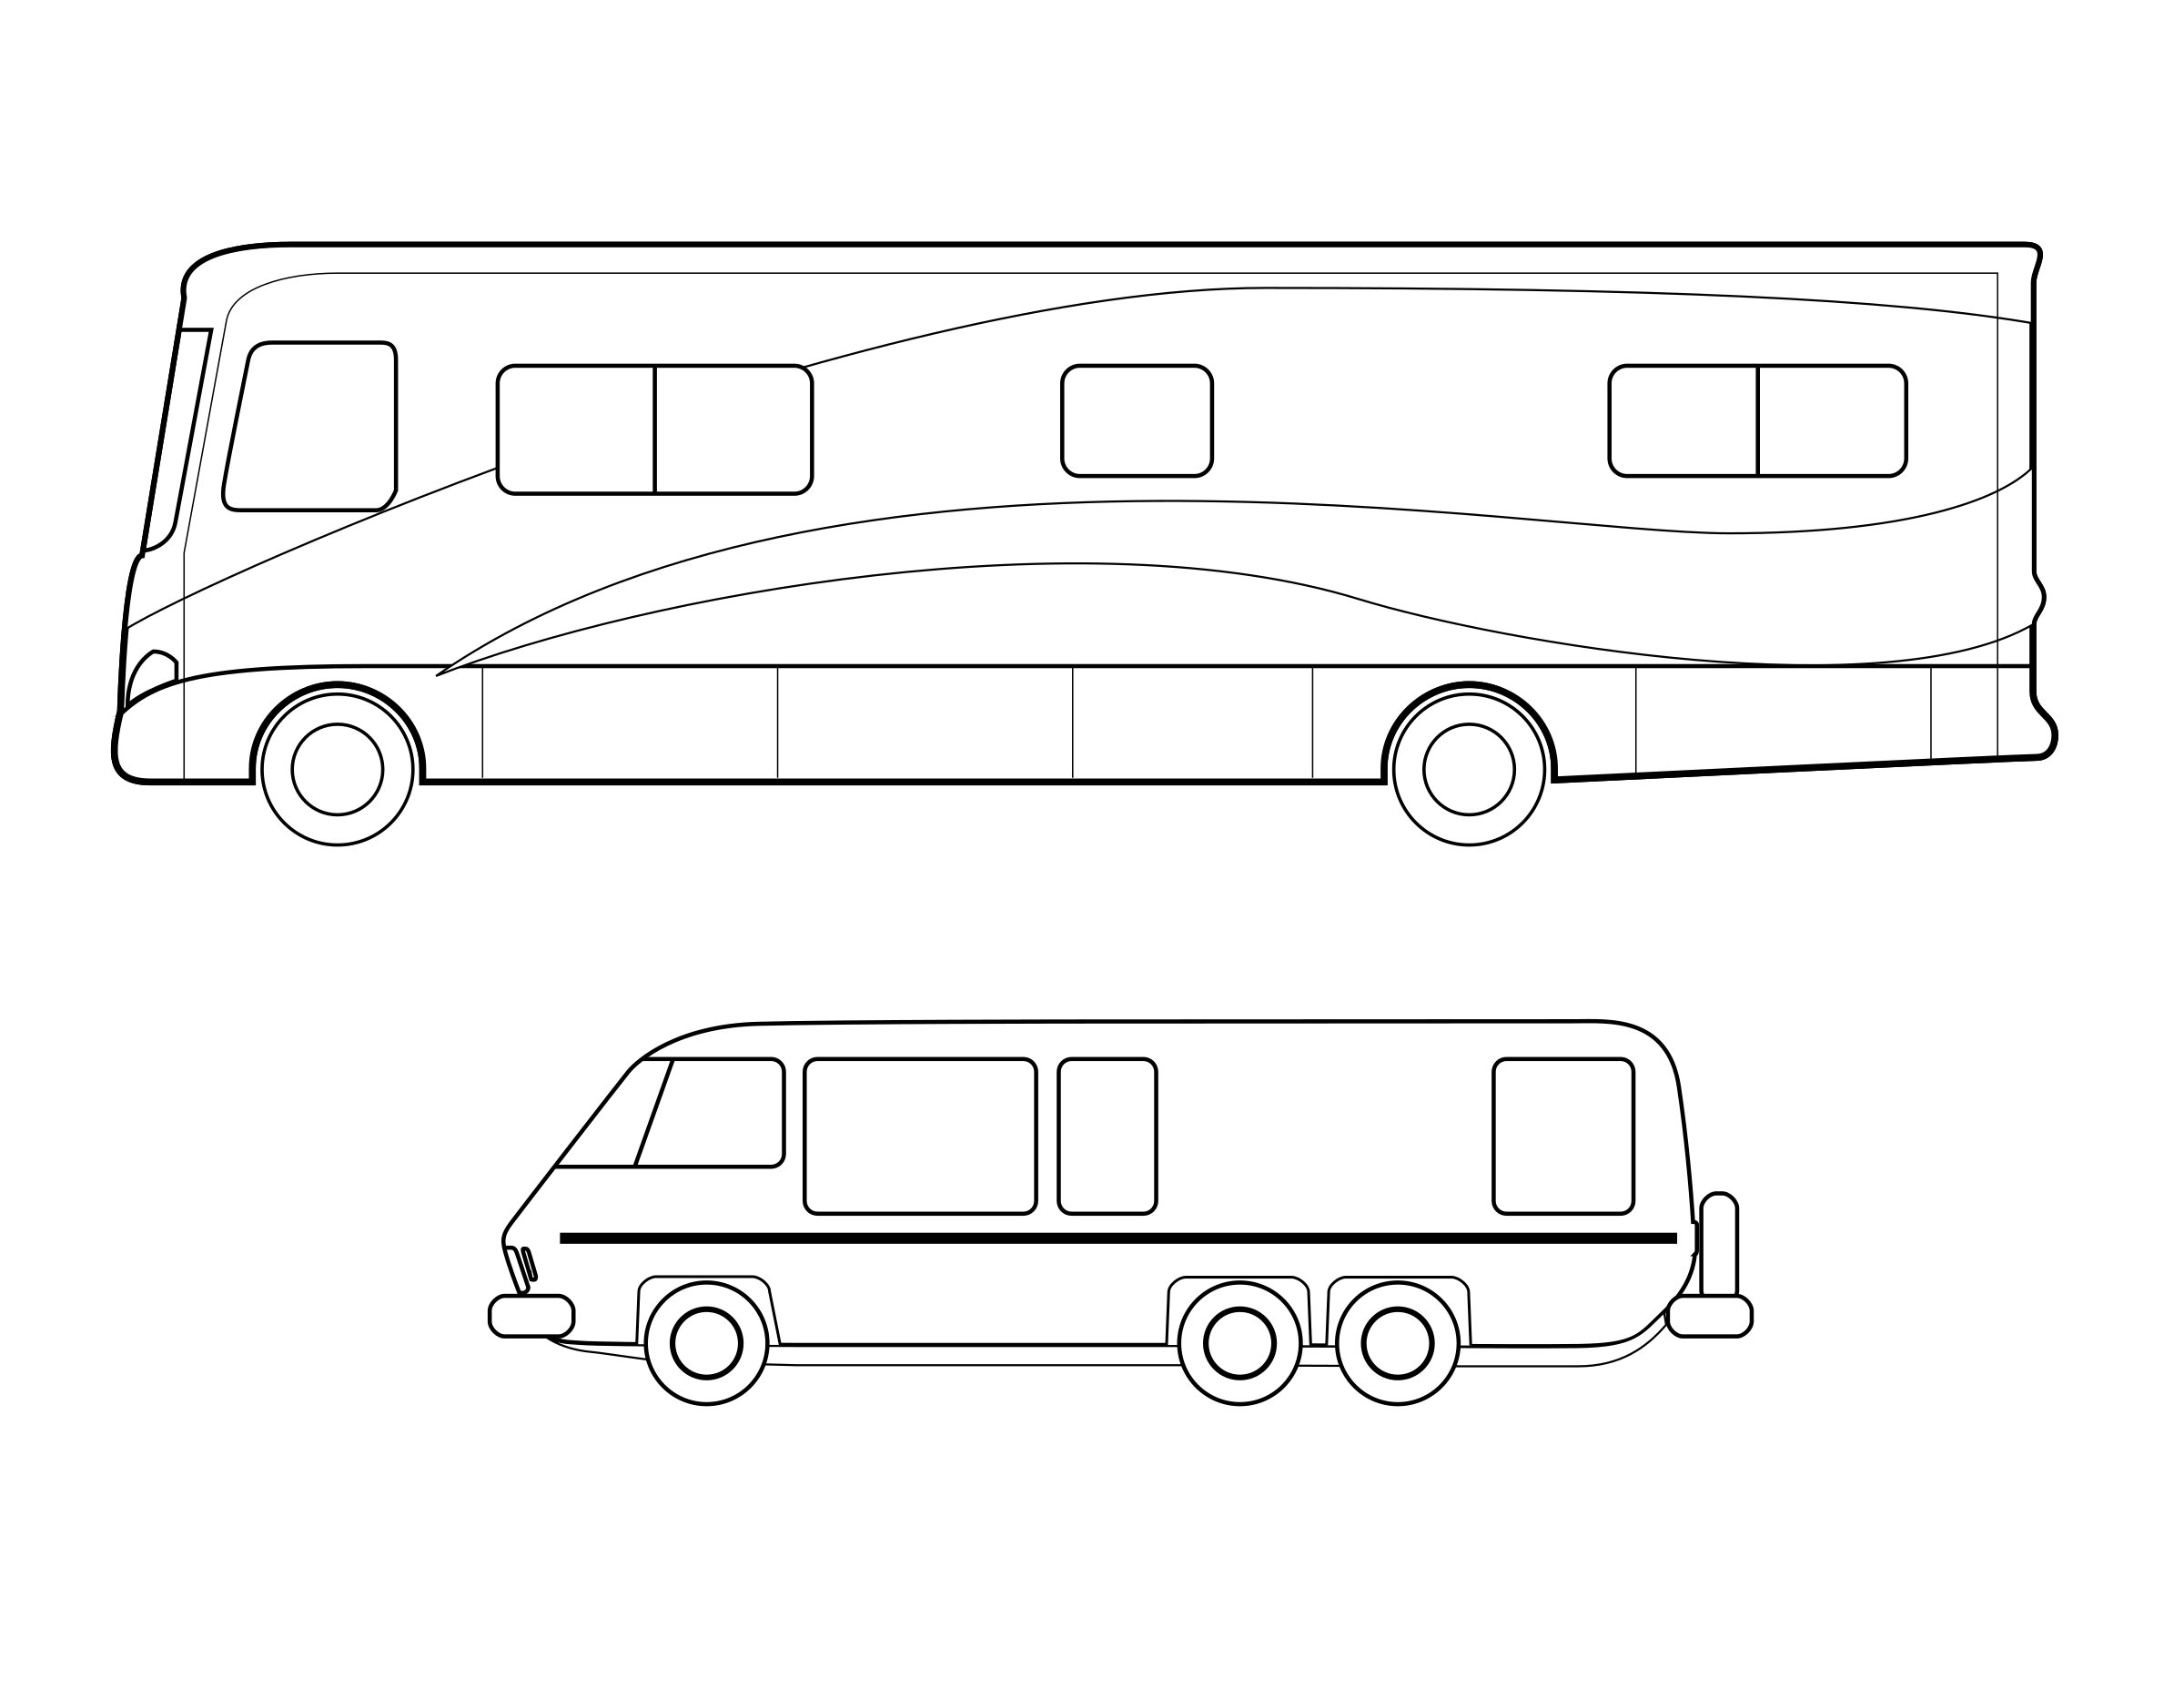 Coloring page of motorhomes by mvolz